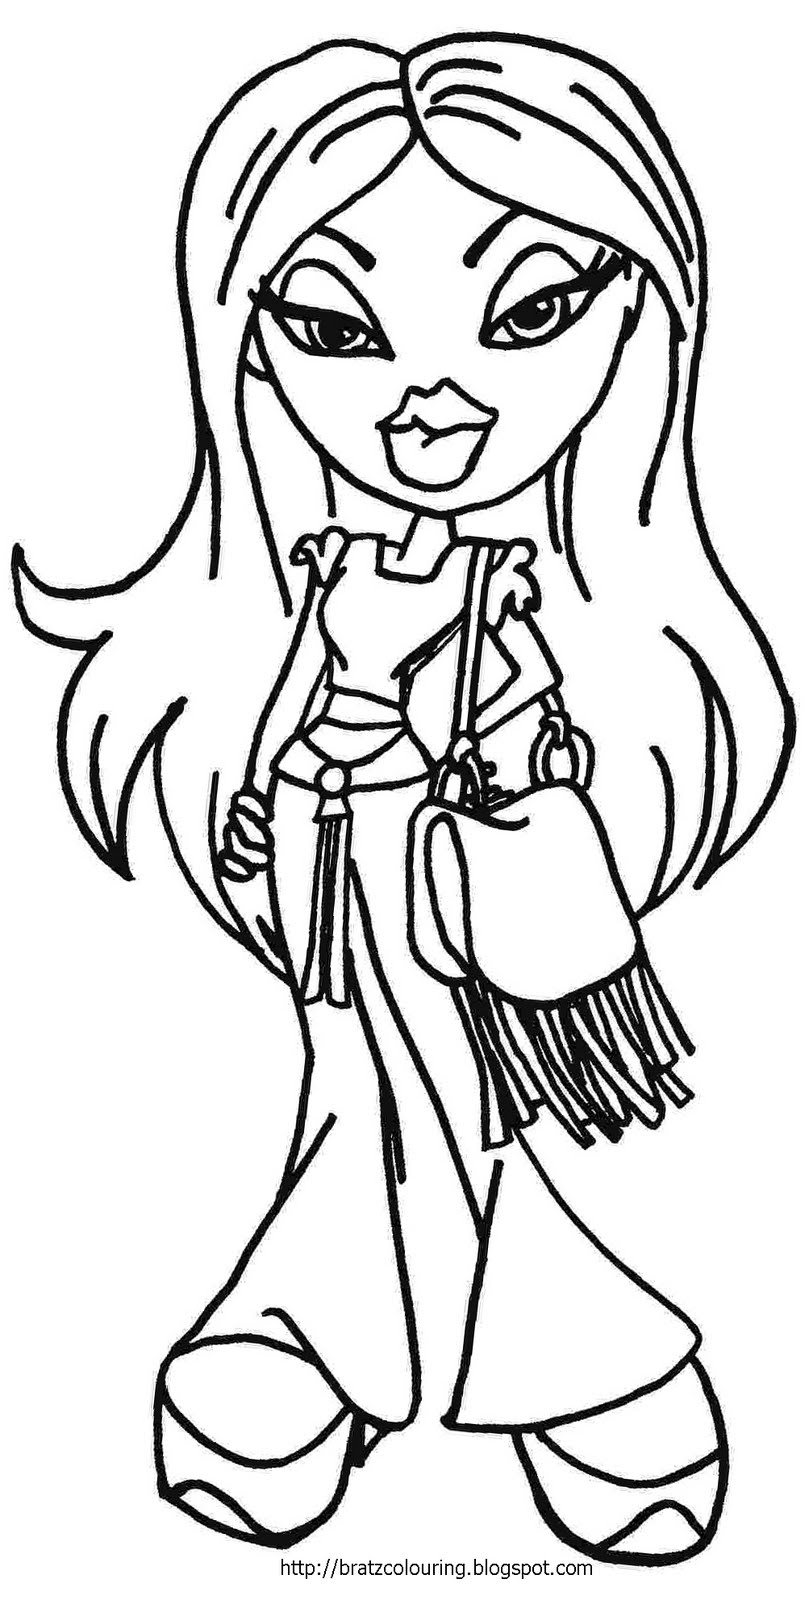 coloring pages bratz dolls - photo#2